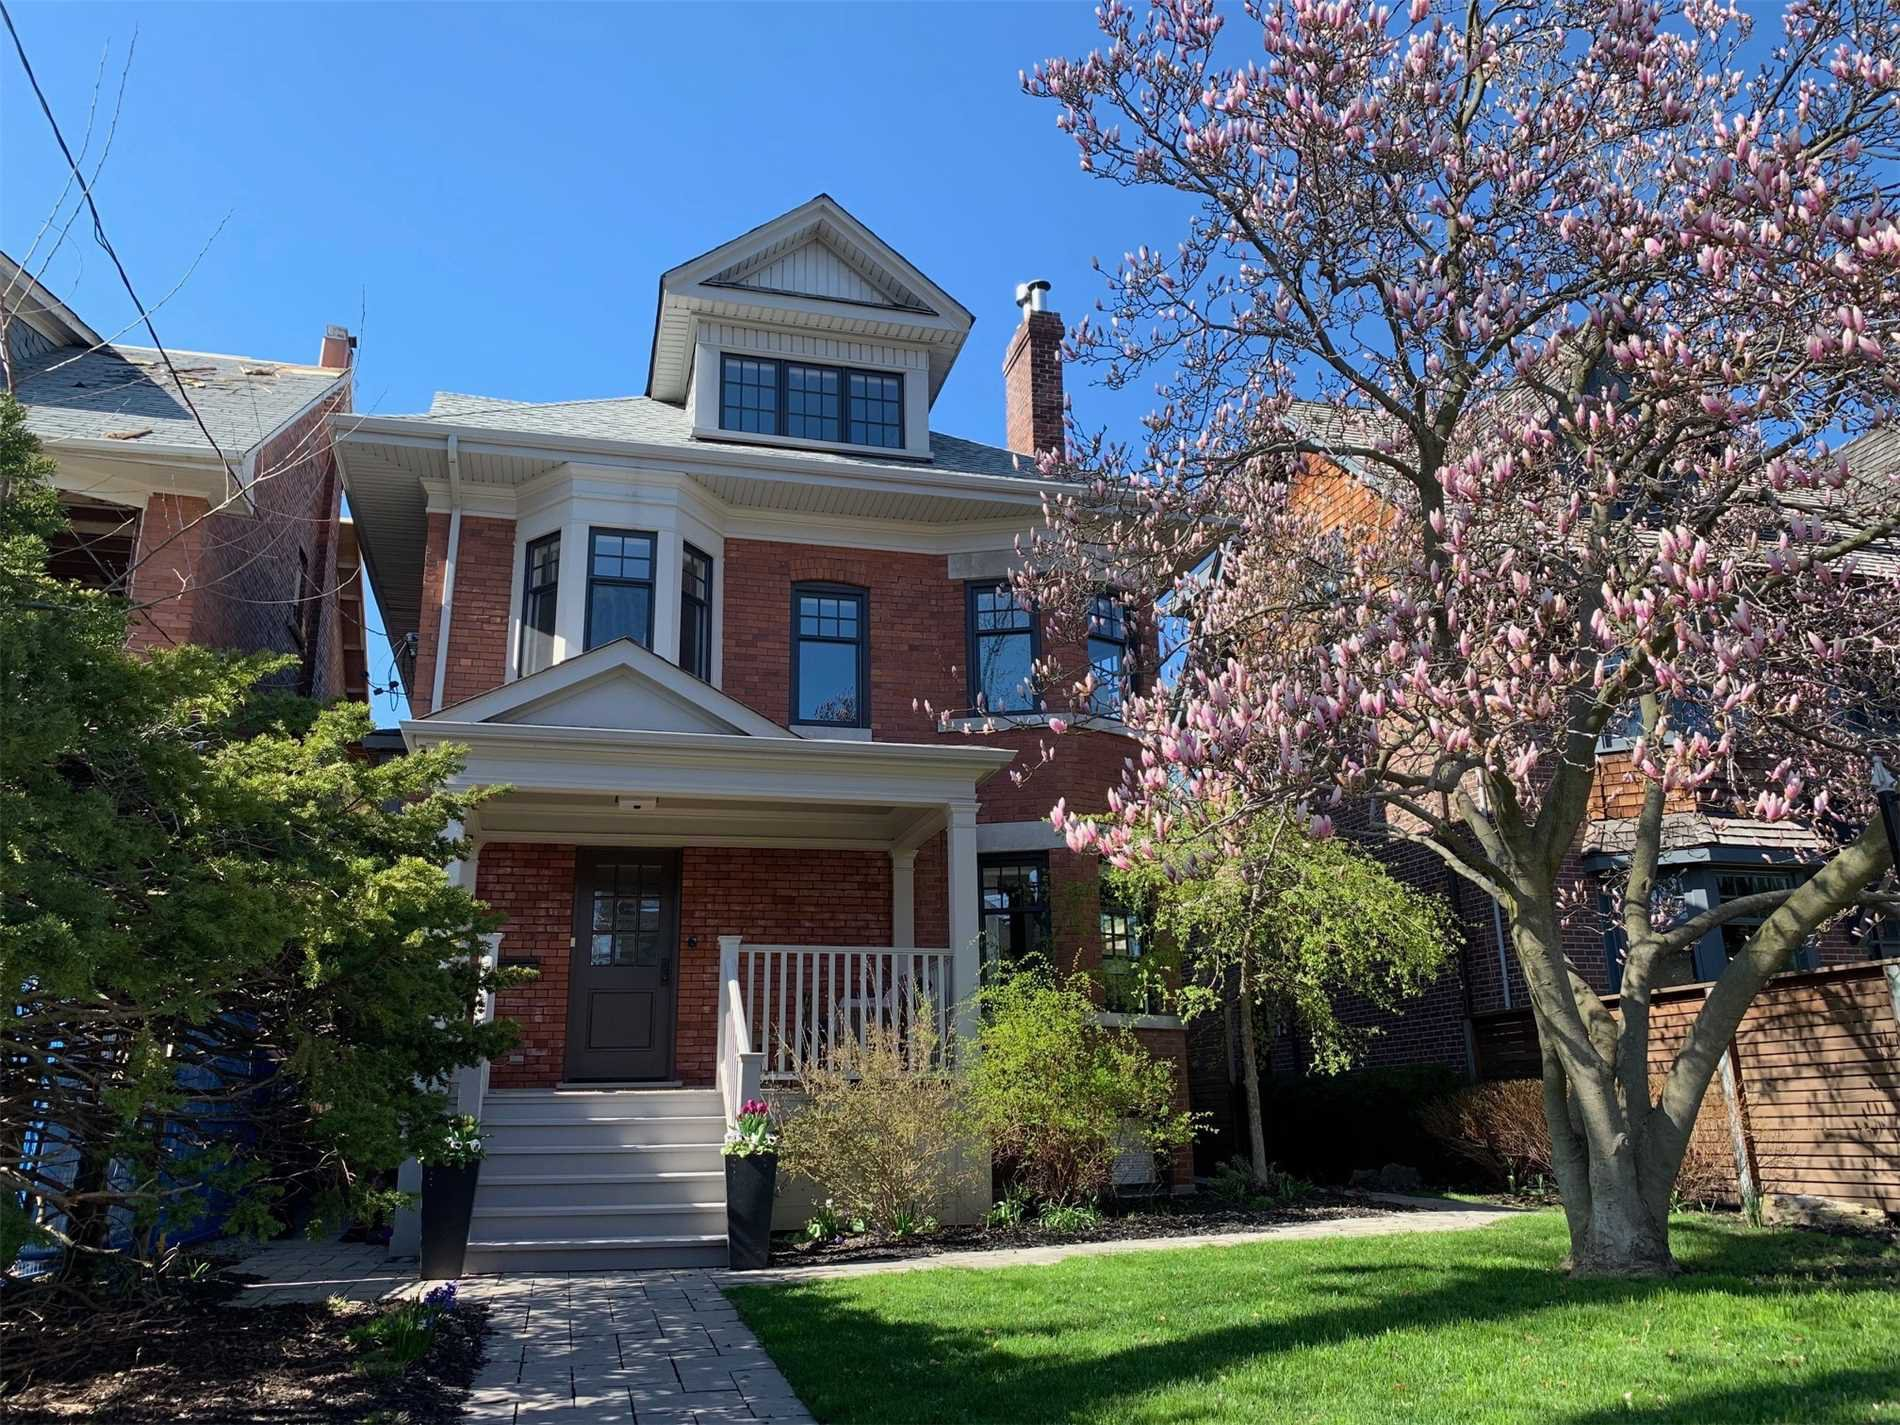 Main Photo: 30 St Andrews Gardens in Toronto: Rosedale-Moore Park House (3-Storey) for sale (Toronto C09)  : MLS®# C4439594